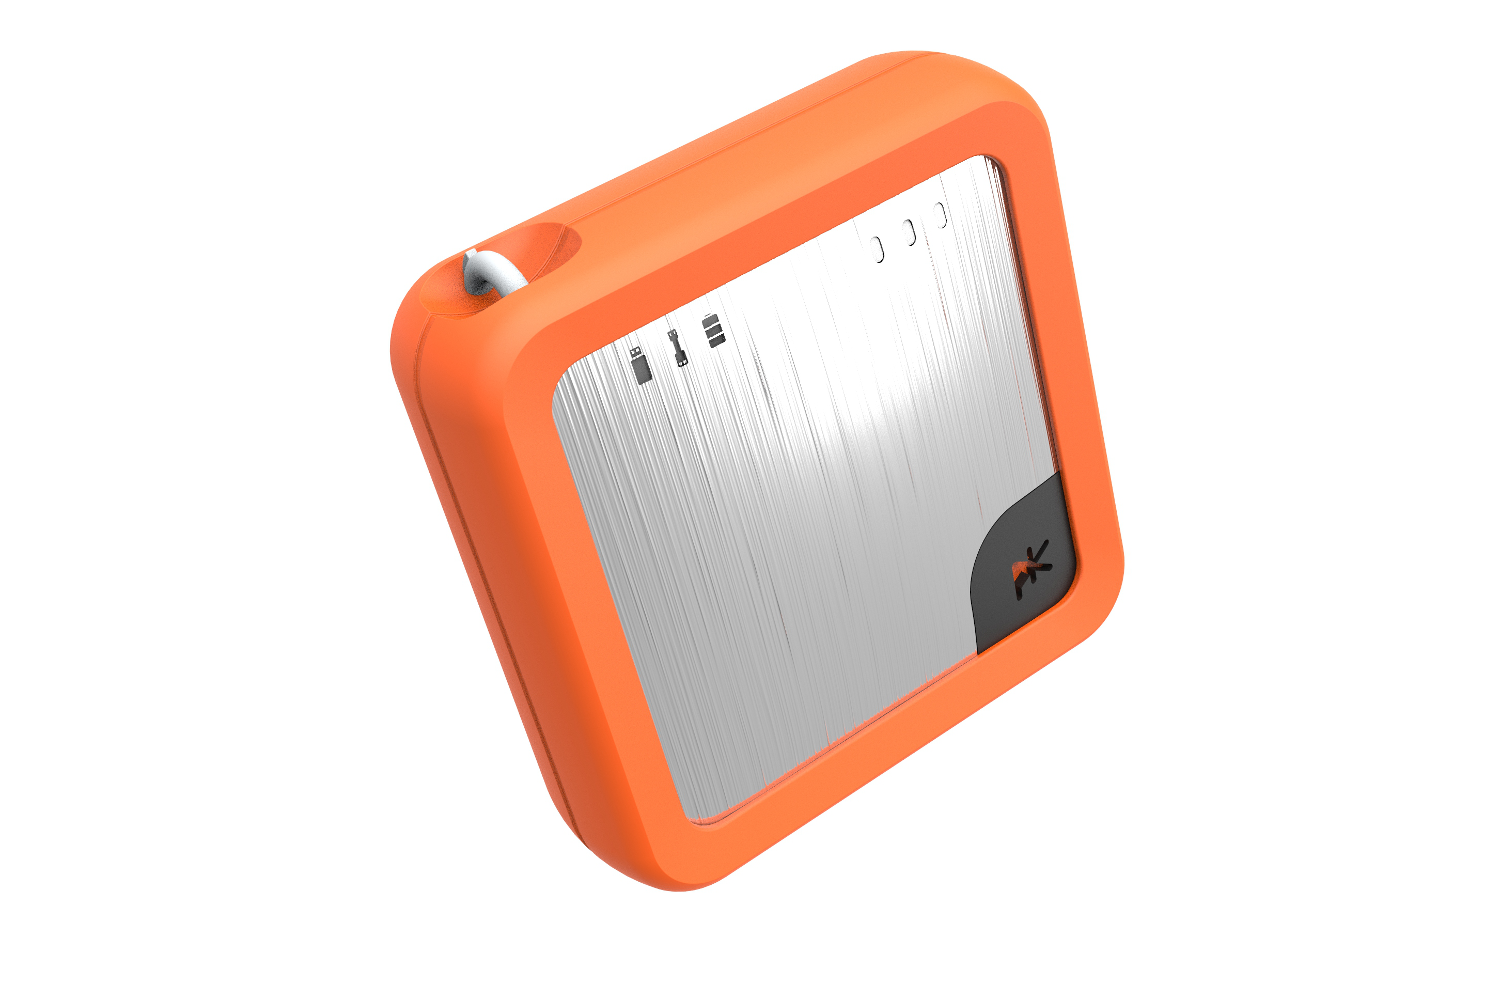 The Swiss Army Knife of phone tools, PK's K'isauve is a battery, SSD, cable in one